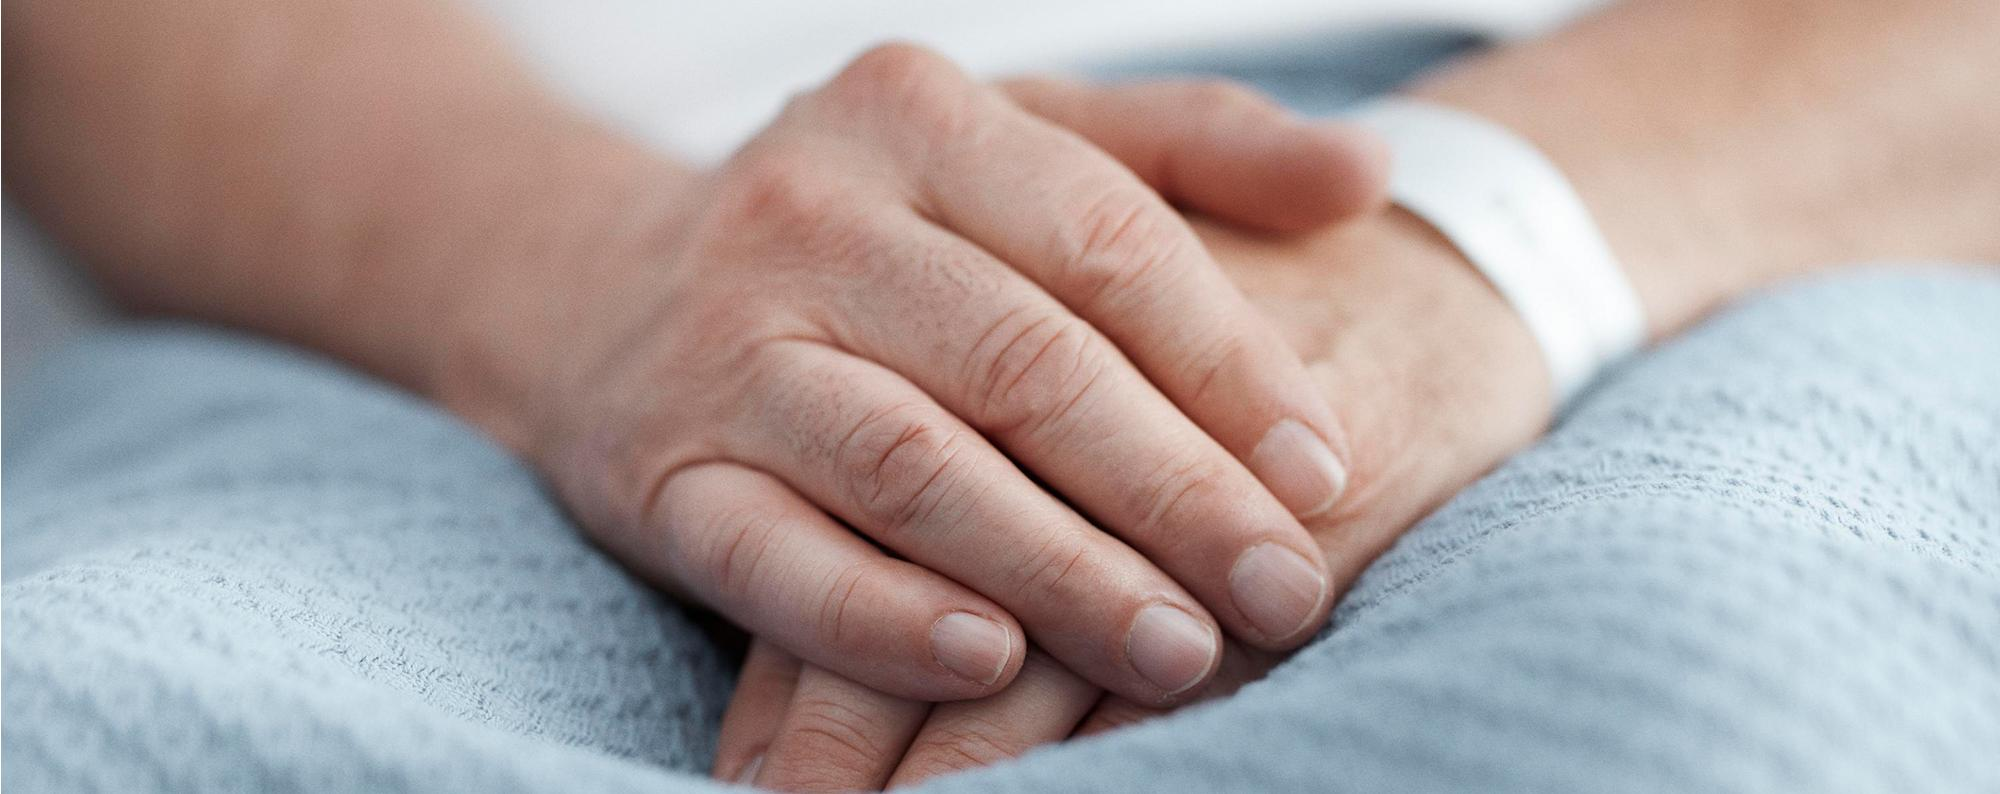 Hands folded on a patient's lap in an acute care setting